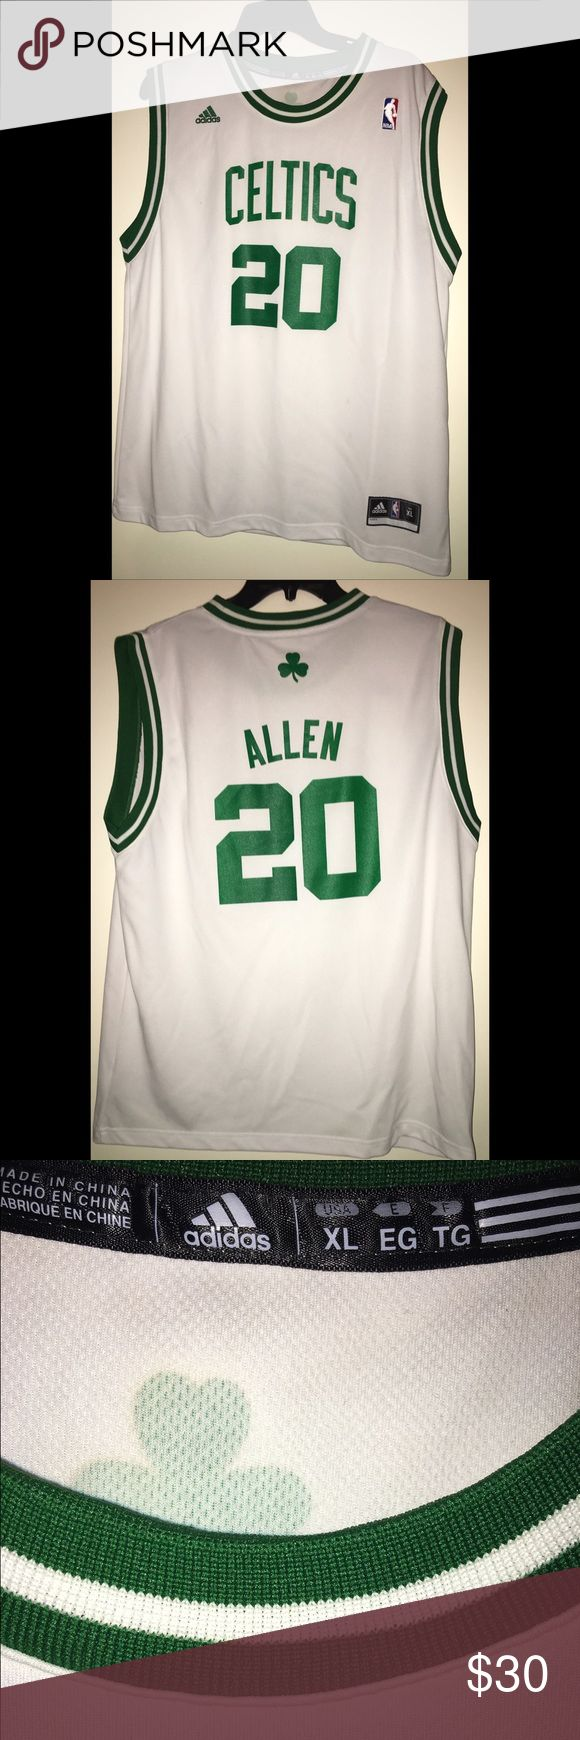 KIDS Ray Allen NBA Celtics 🍀 Jersey 2️⃣0️⃣ This is a KIDS Size XL authentic NBA Adidas 2️⃣0️⃣ Ray Allen Boston Celtics 🍀 jersey‼️ a classic cuz as u know he has retired 😕 Adidas Other